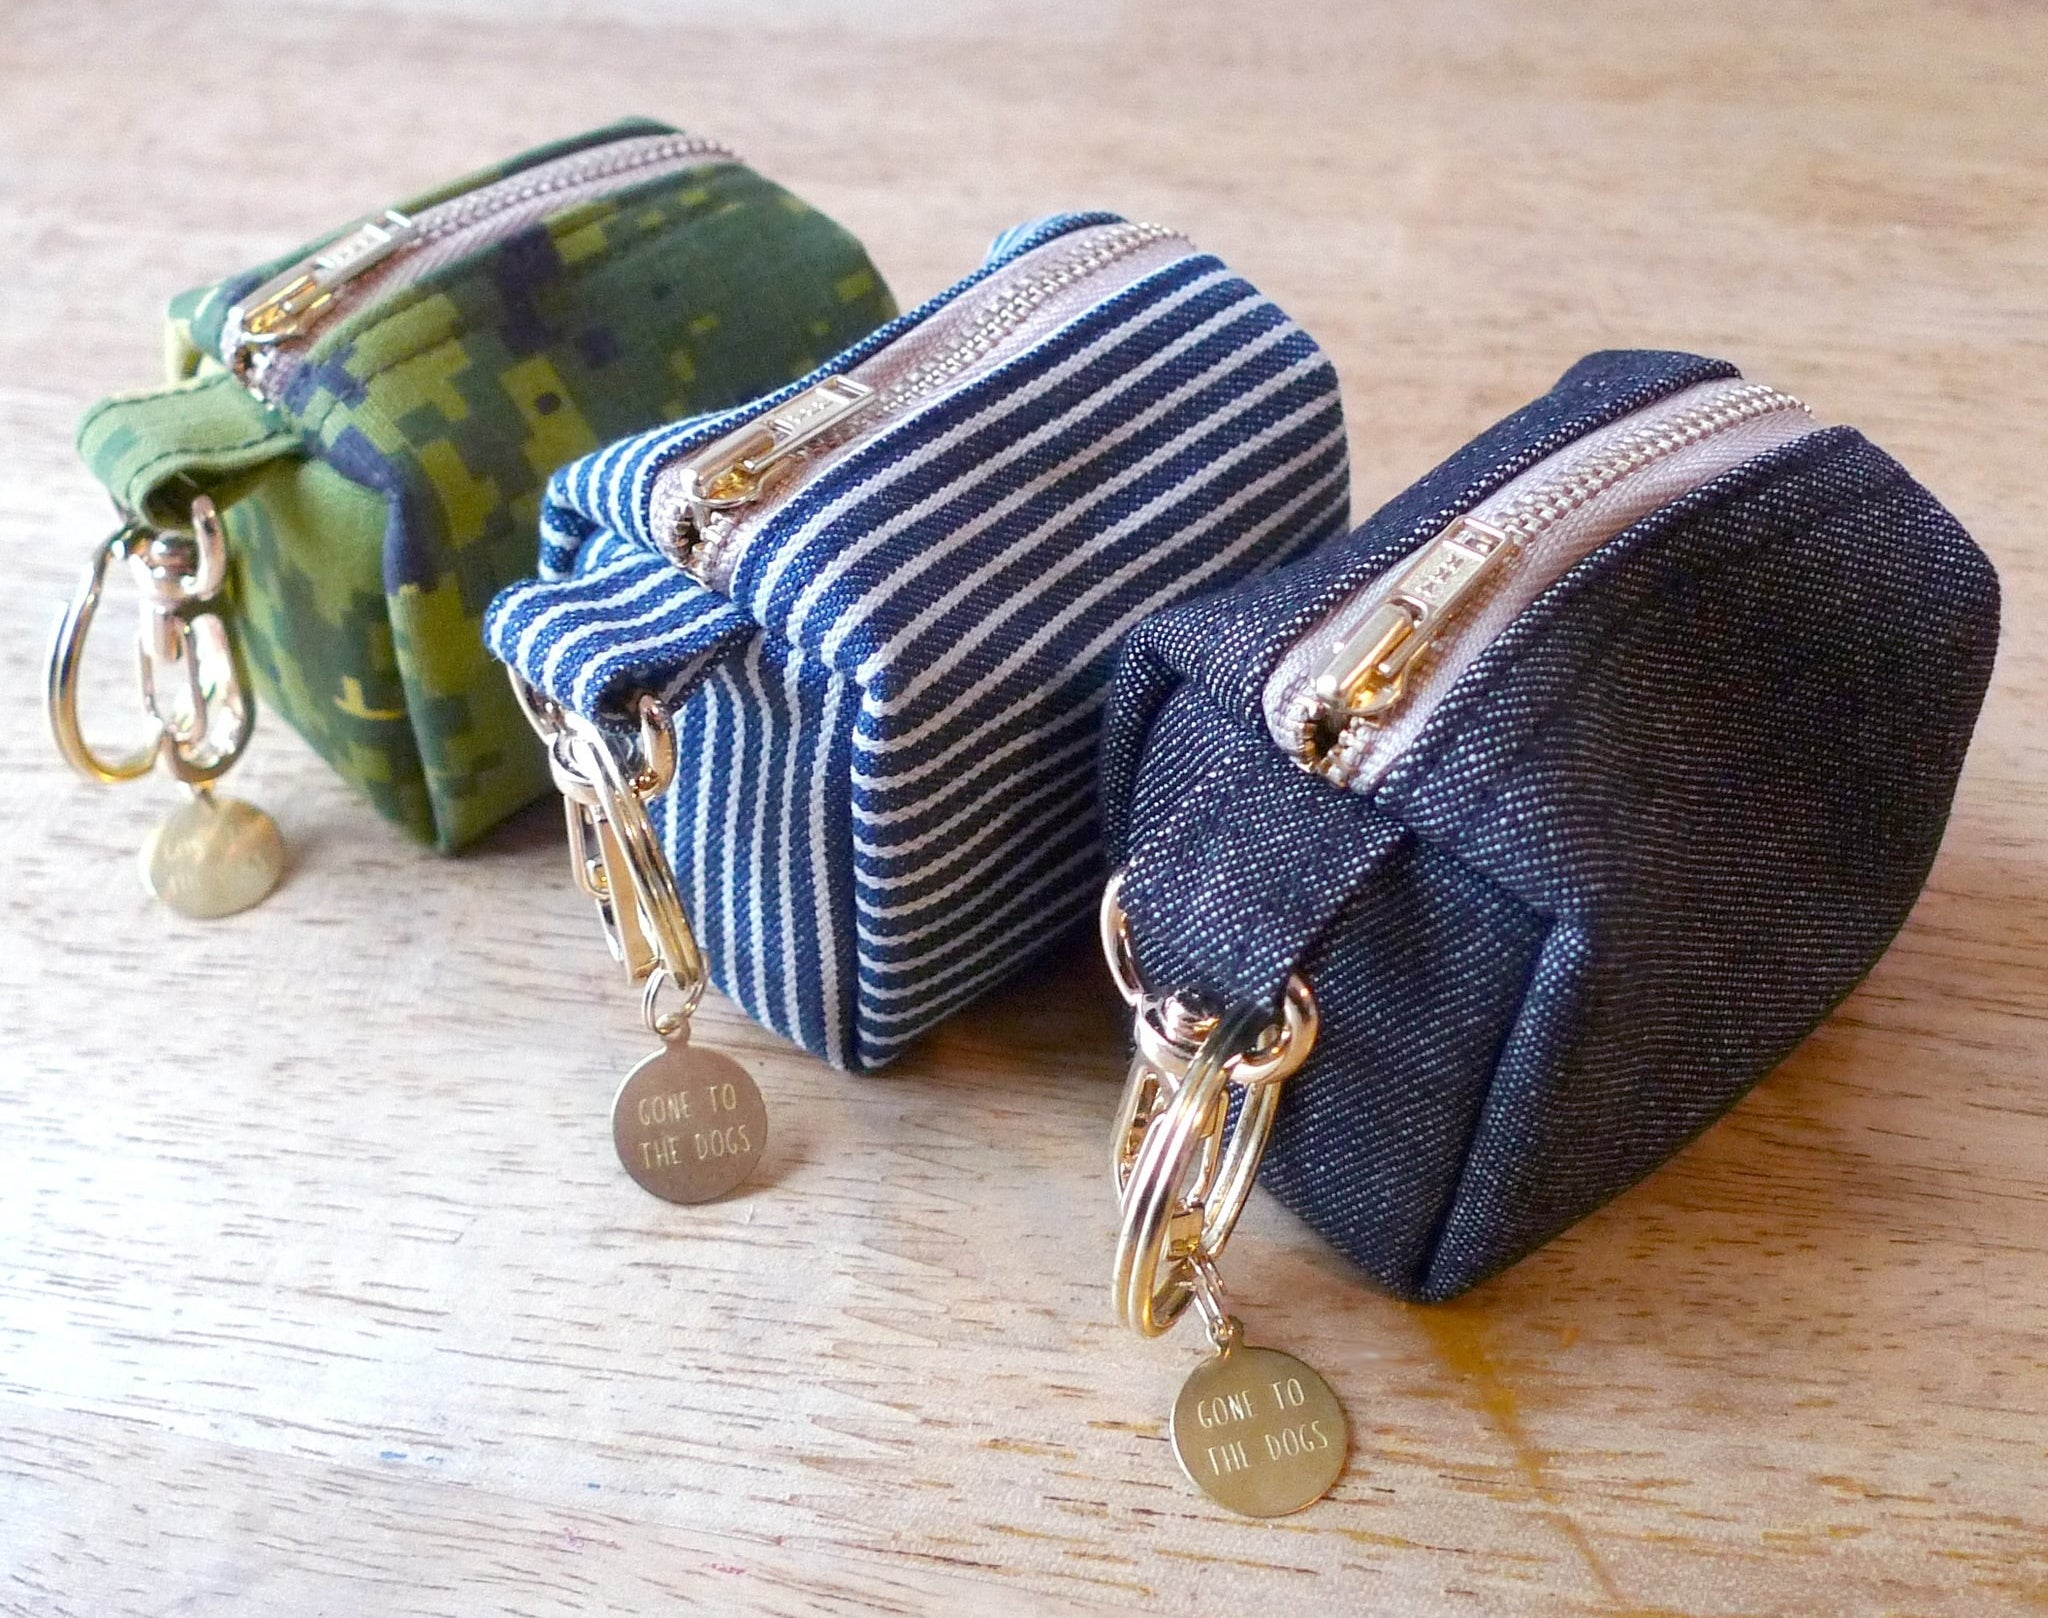 the poop bags in green, blue and white stripes, and denim